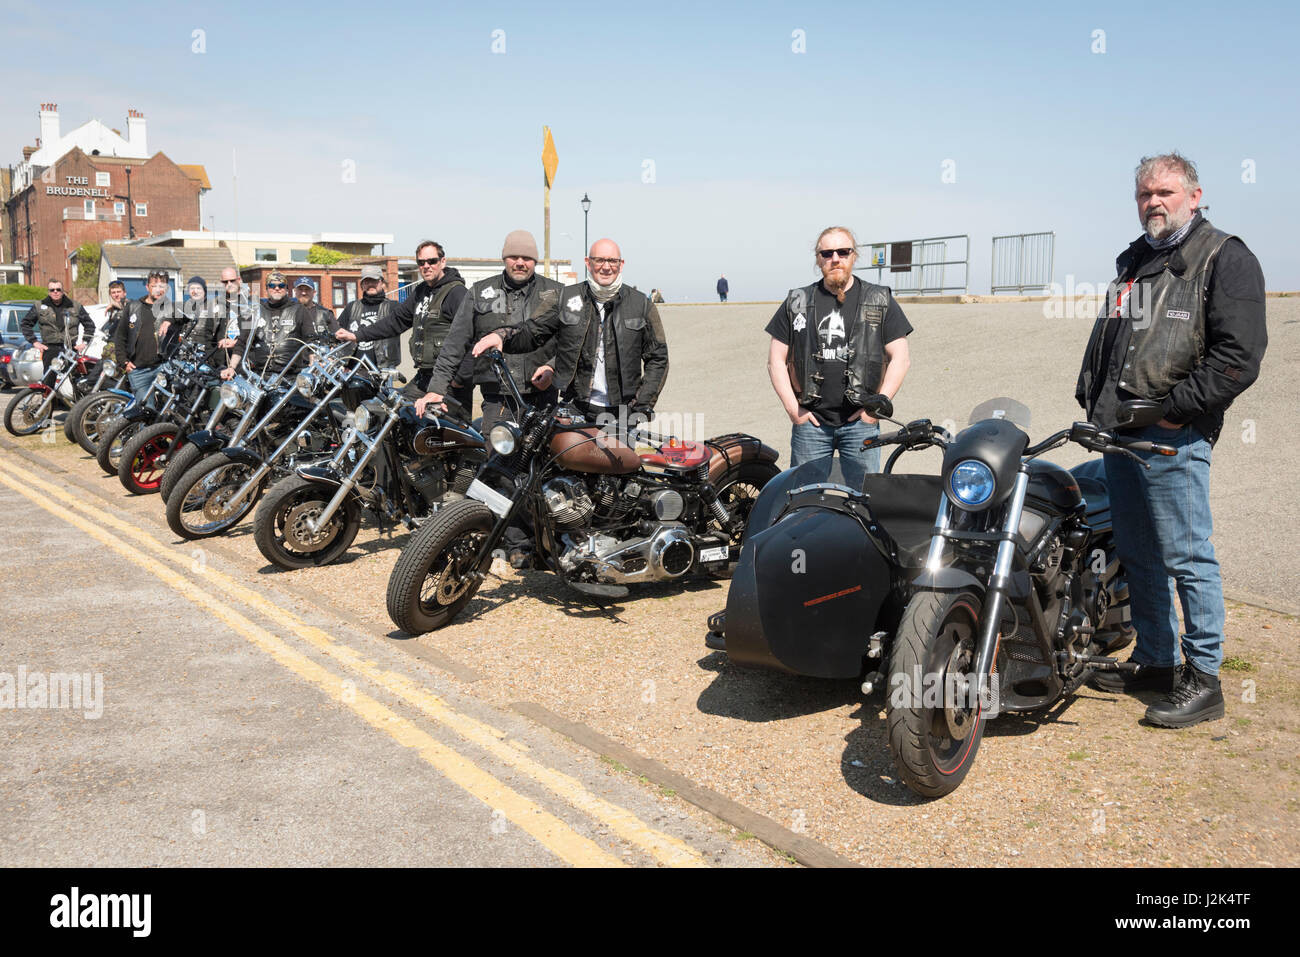 Aldeburgh Suffolk UK, 29th April 2017. Motorcyclists from the Chopper Club Germany pose on the seafront in bright - Stock Image